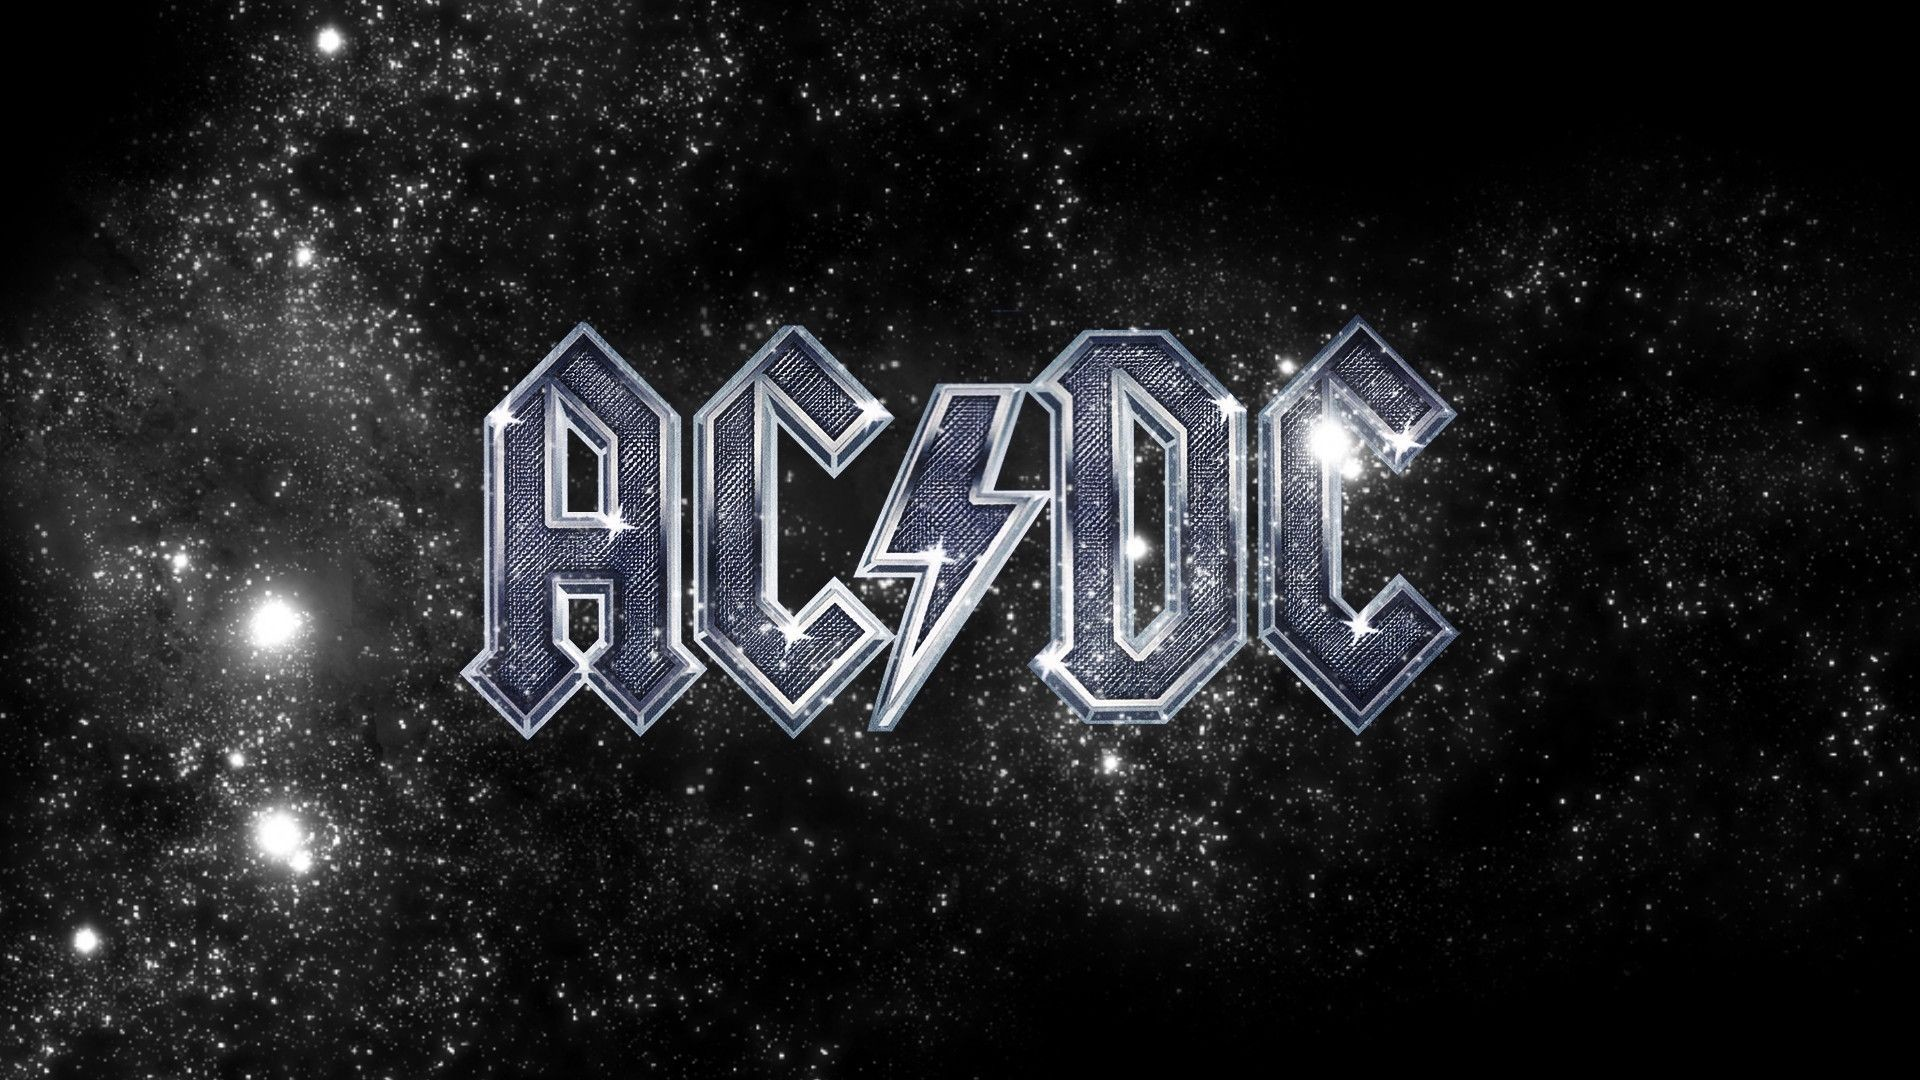 1920x1080 HDQ Cover Wallpapers: AC DC Wallpapers Free, AC DC Photos For